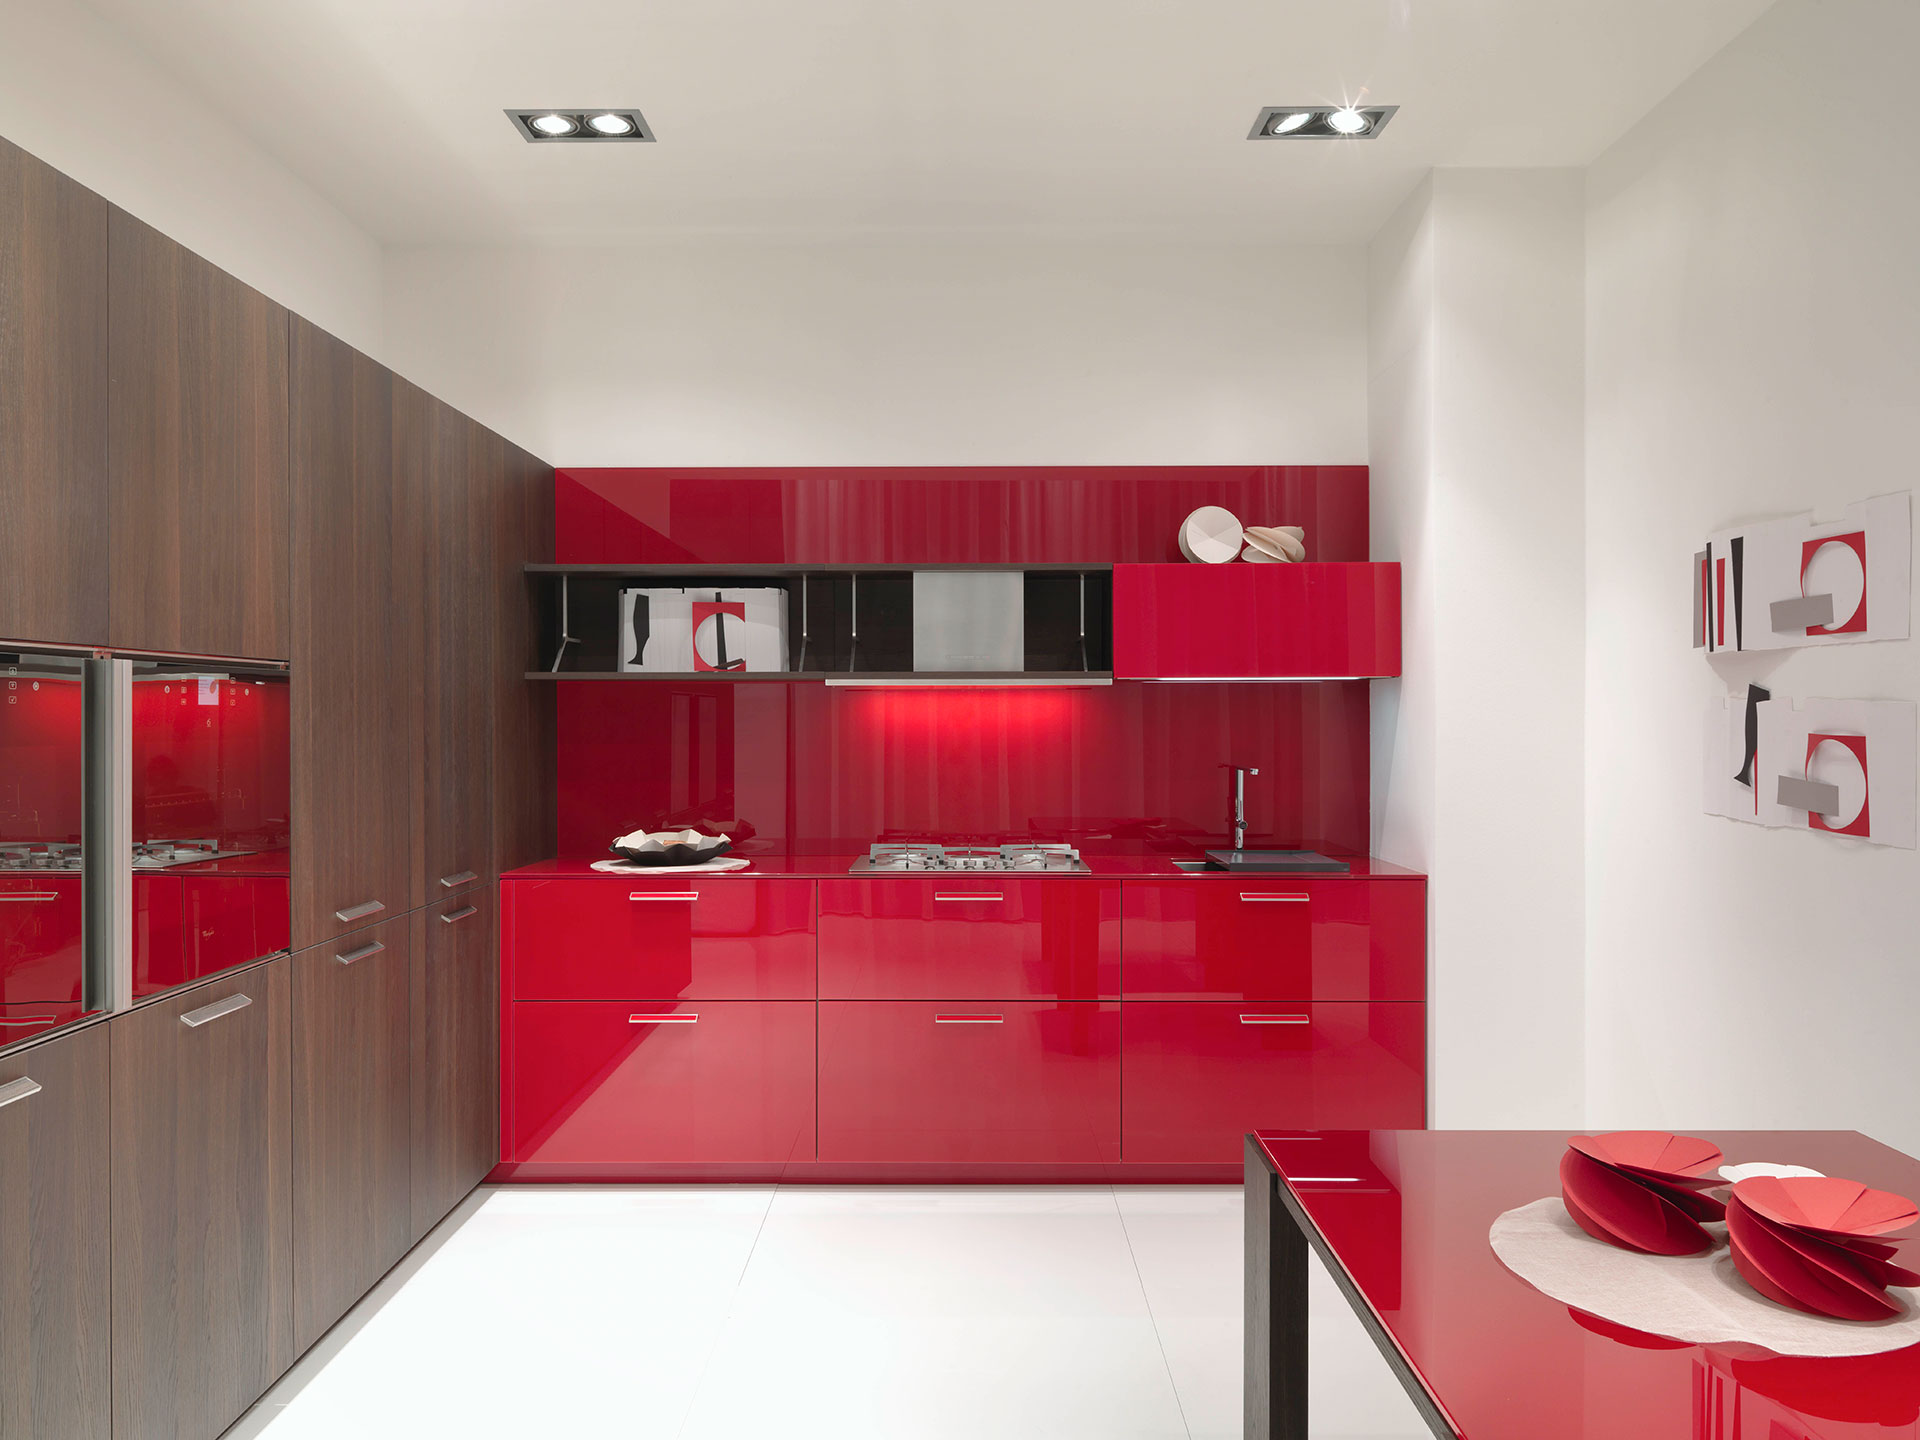 Noblesse oblige by aster cucine habitat by aeon for Aster cucine kitchen cabinets